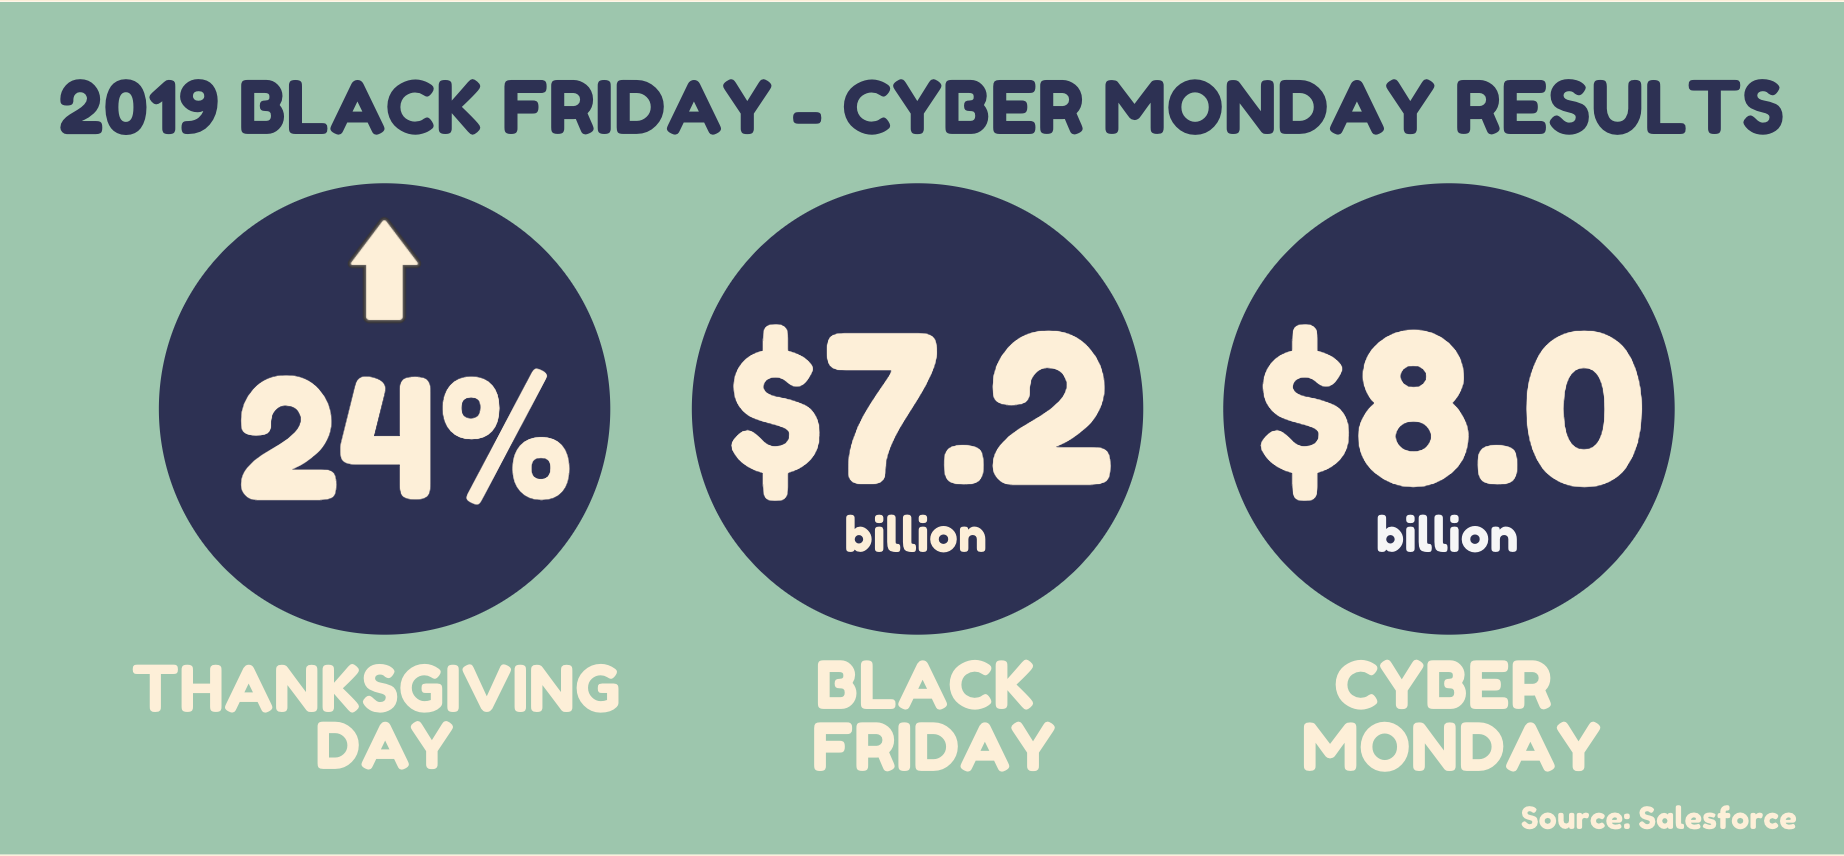 2019 Black Friday - Cyber Monday Results